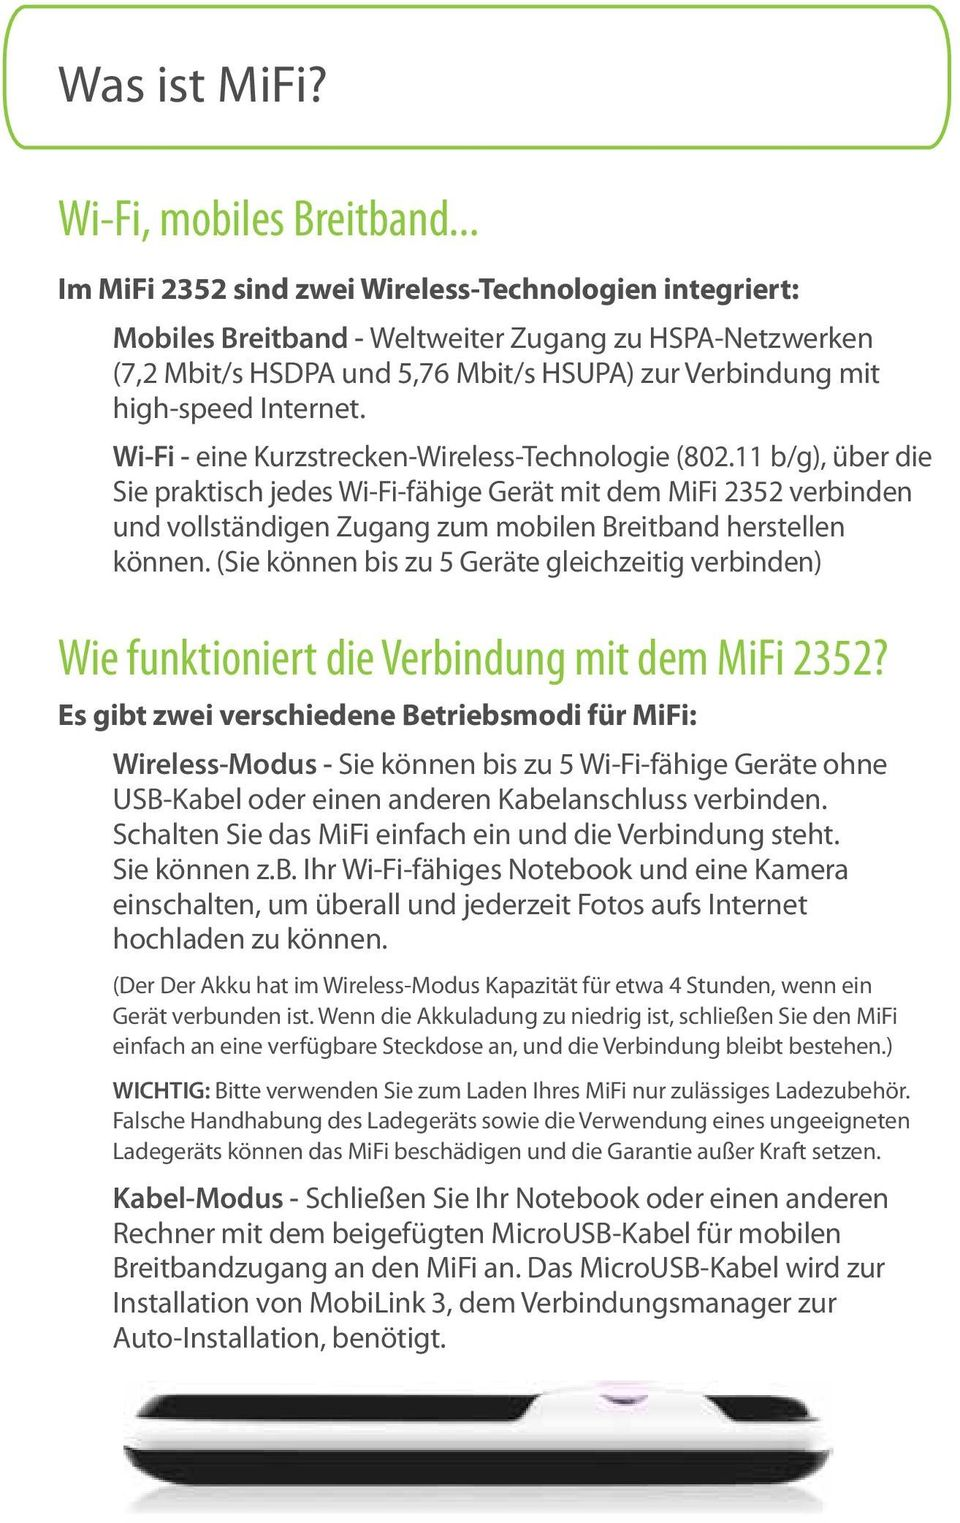 Wi-Fi - eine Kurzstrecken-Wireless-Technologie (802.